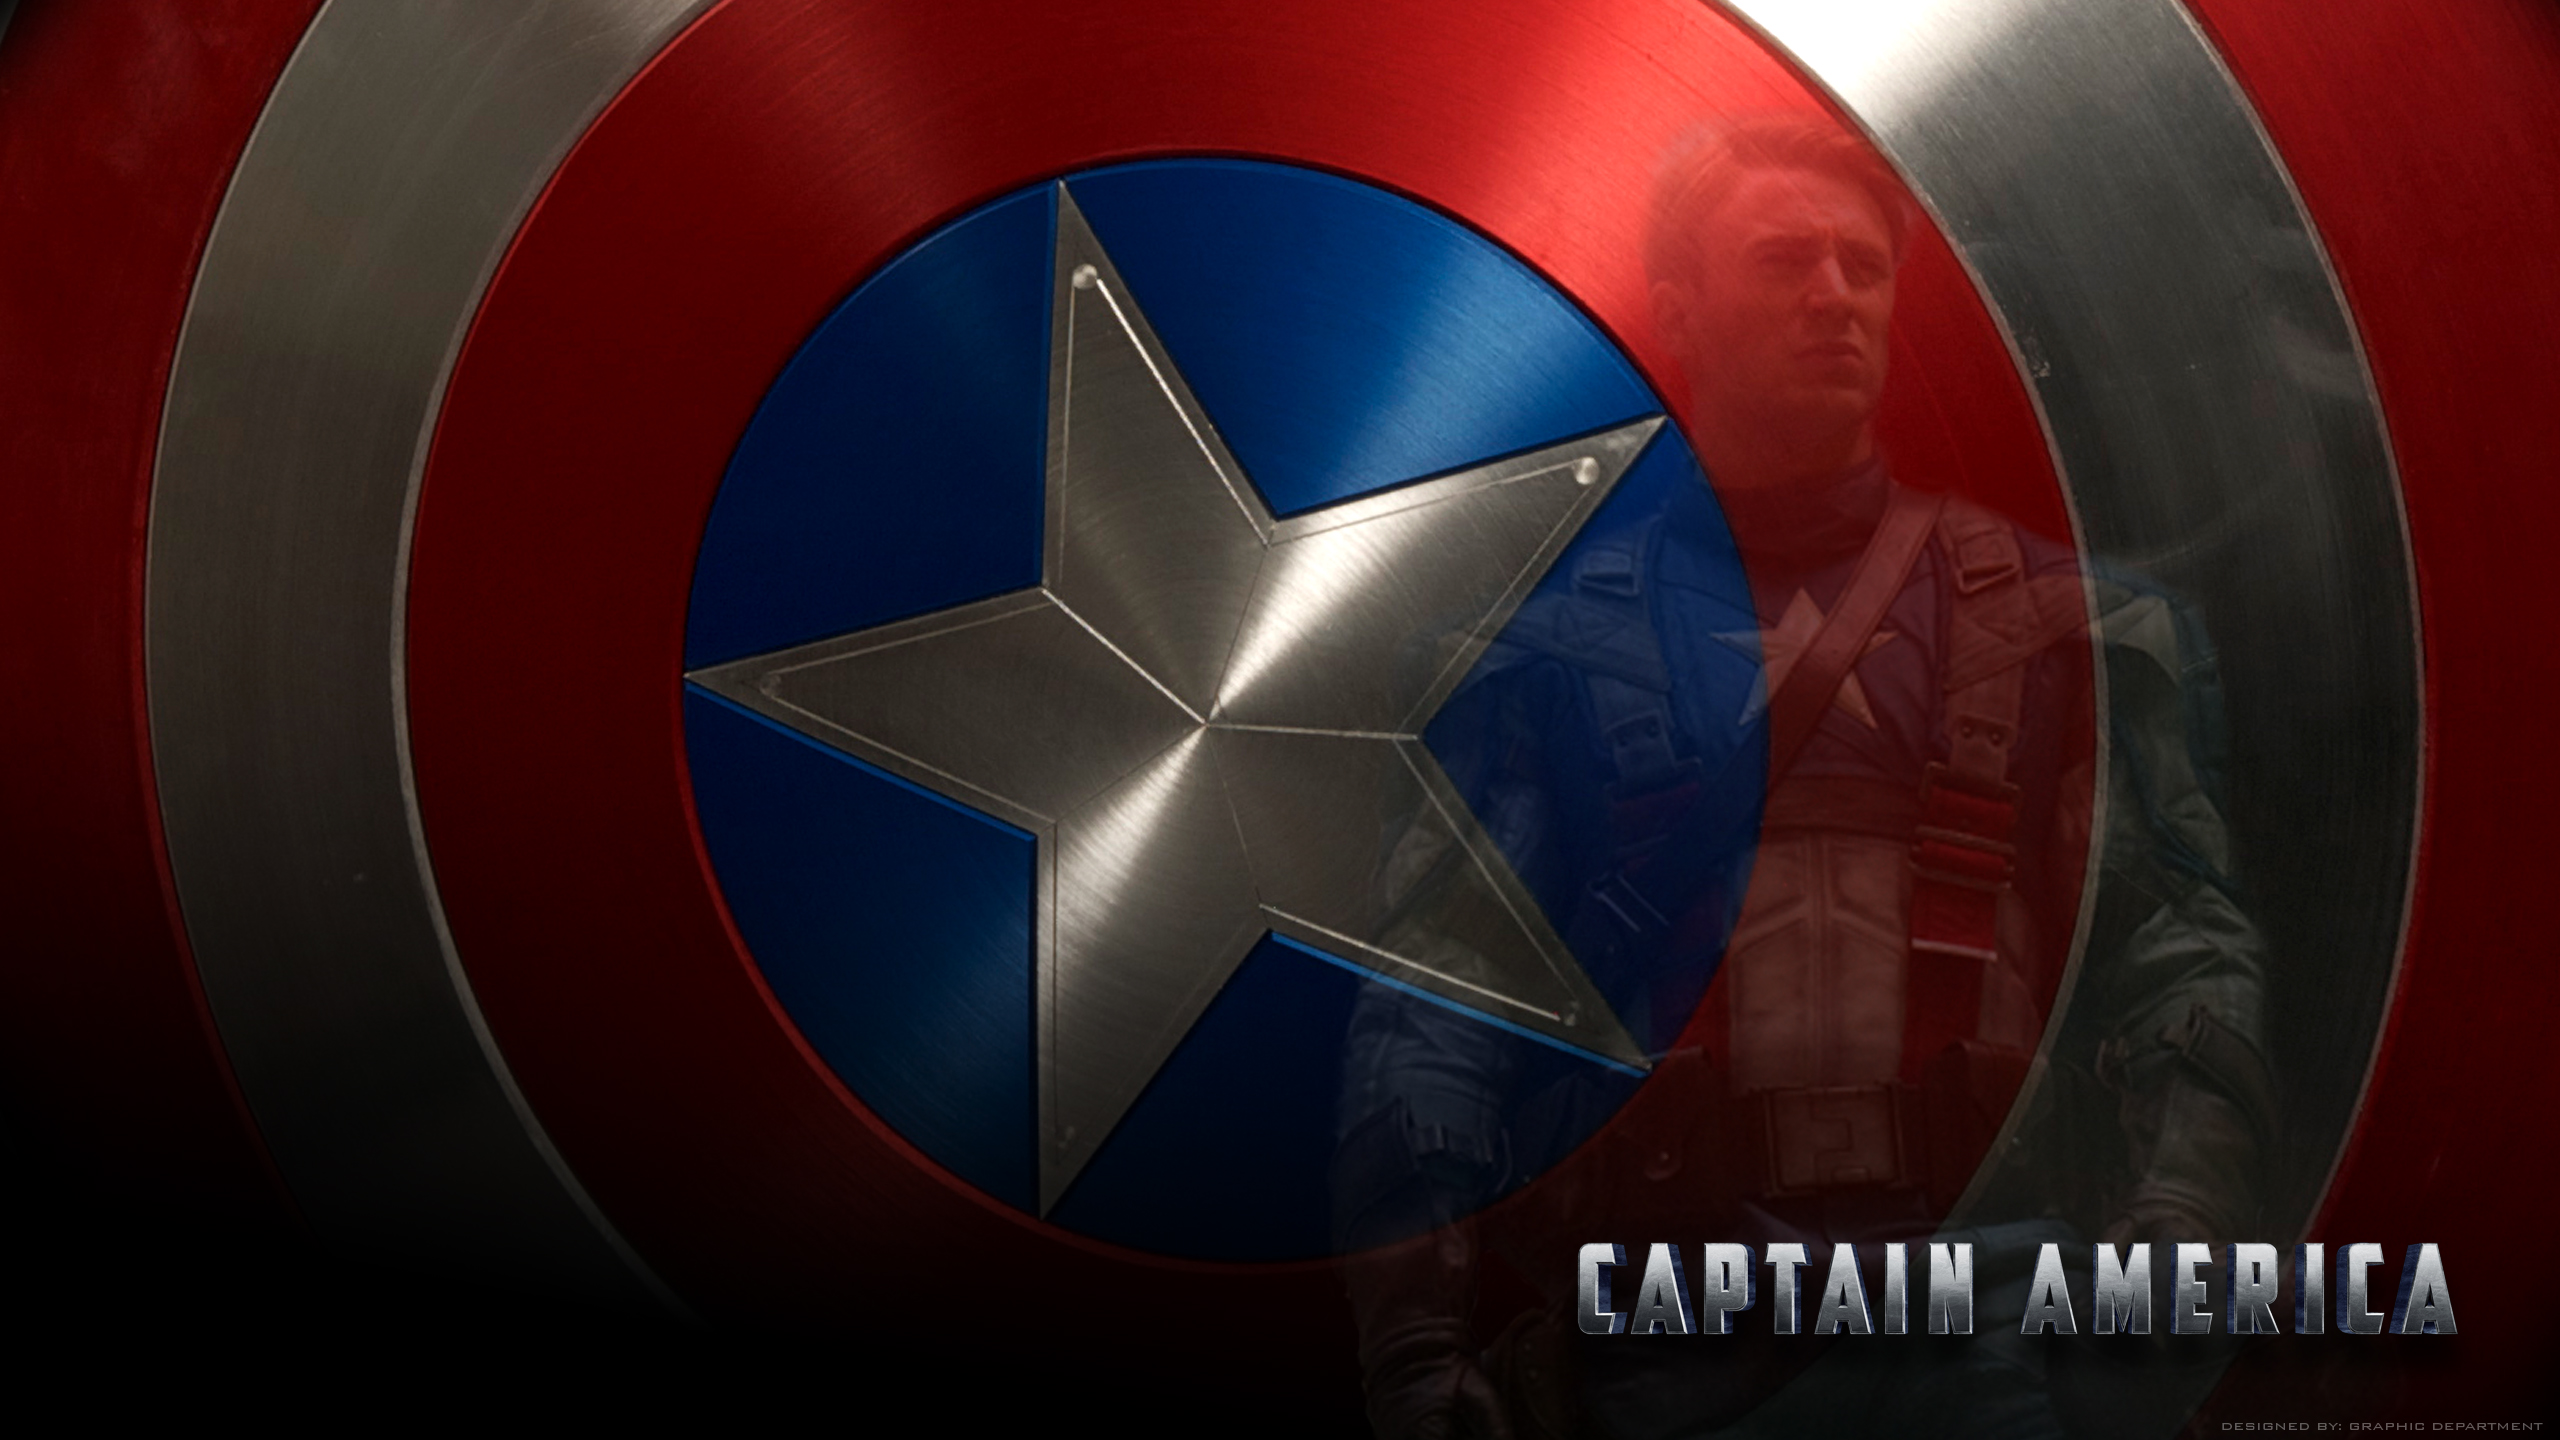 Captain America Wallpapers Awesome Wallpapers 2560x1440